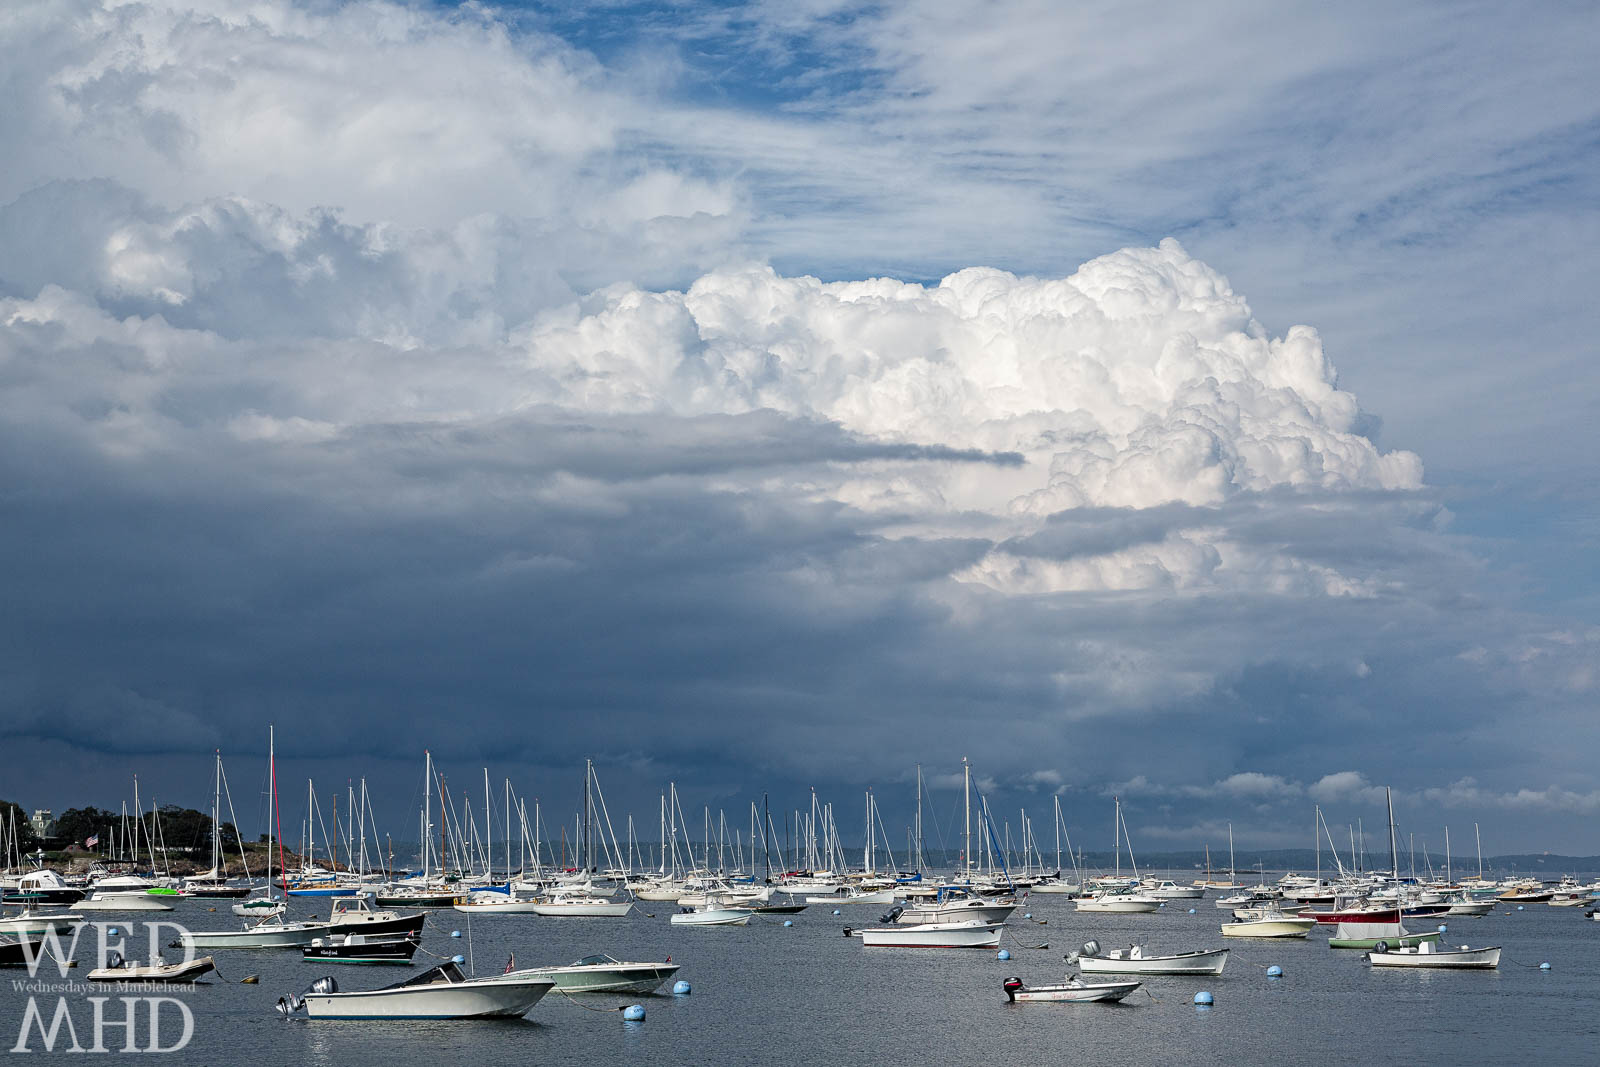 A cumulonimbus cloud forms over Marblehead Harbor ahead of an oncoming storm. The cloud would be followed by an impressive shelf cloud.